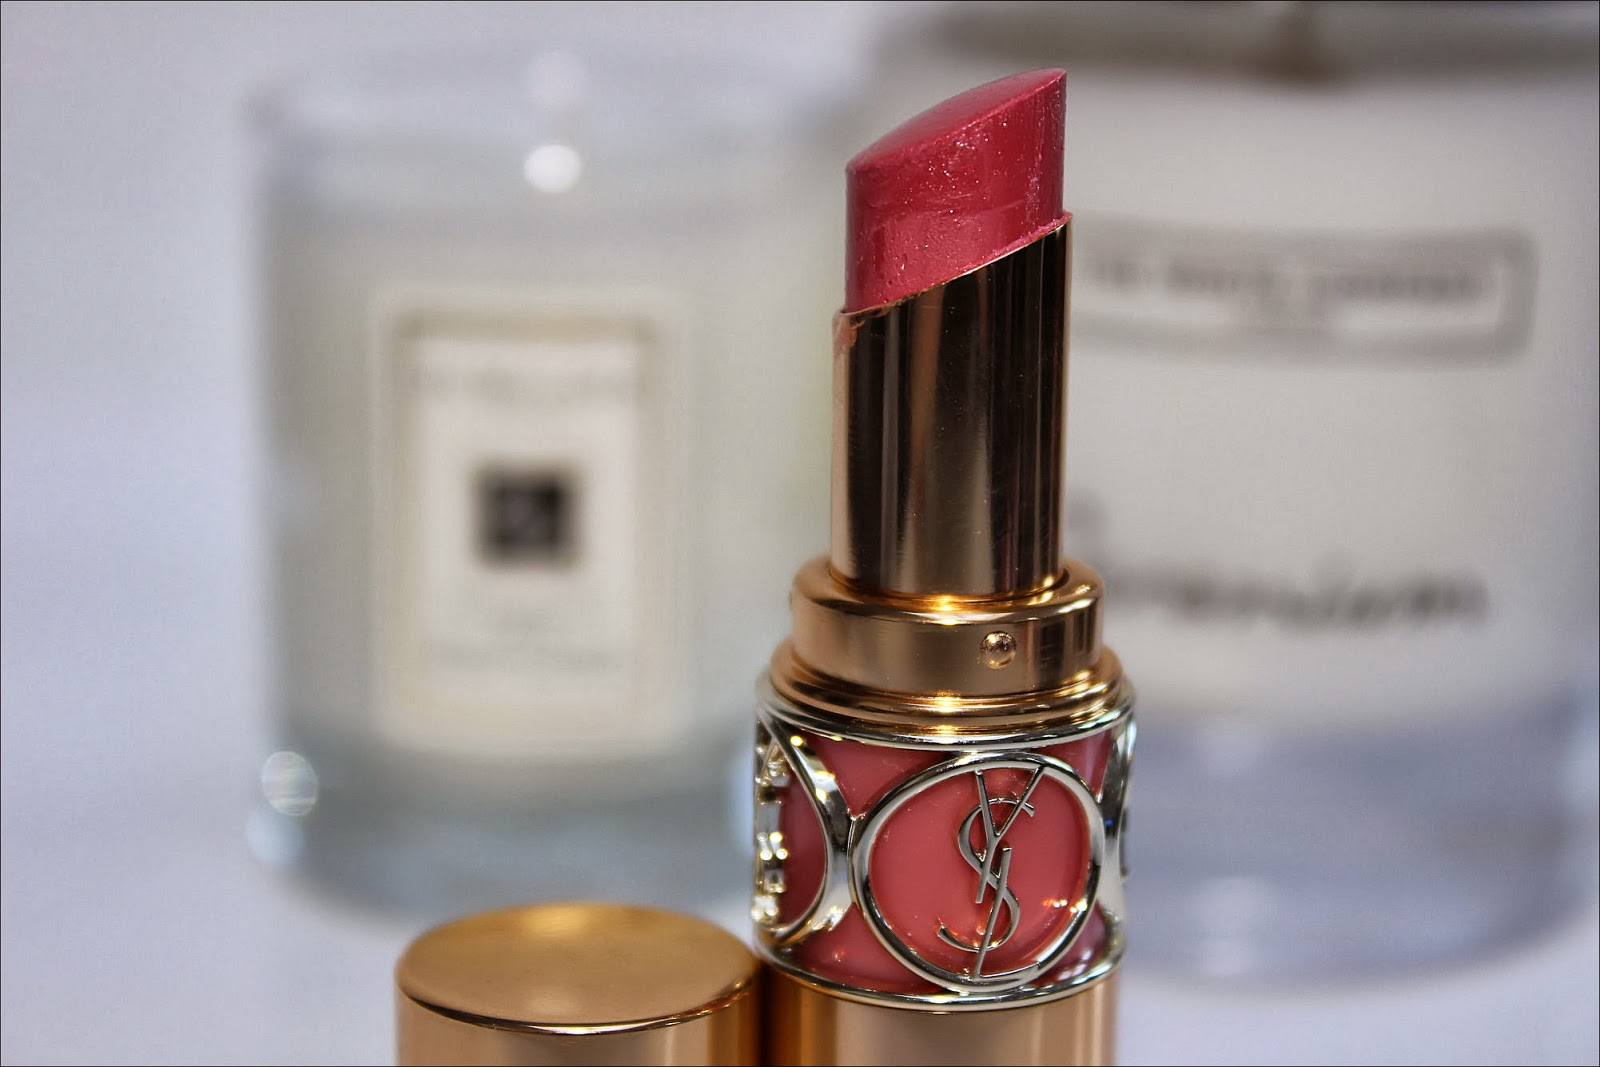 Yves Saint Laurent - Rouge Volupte - Fetish Pink #8